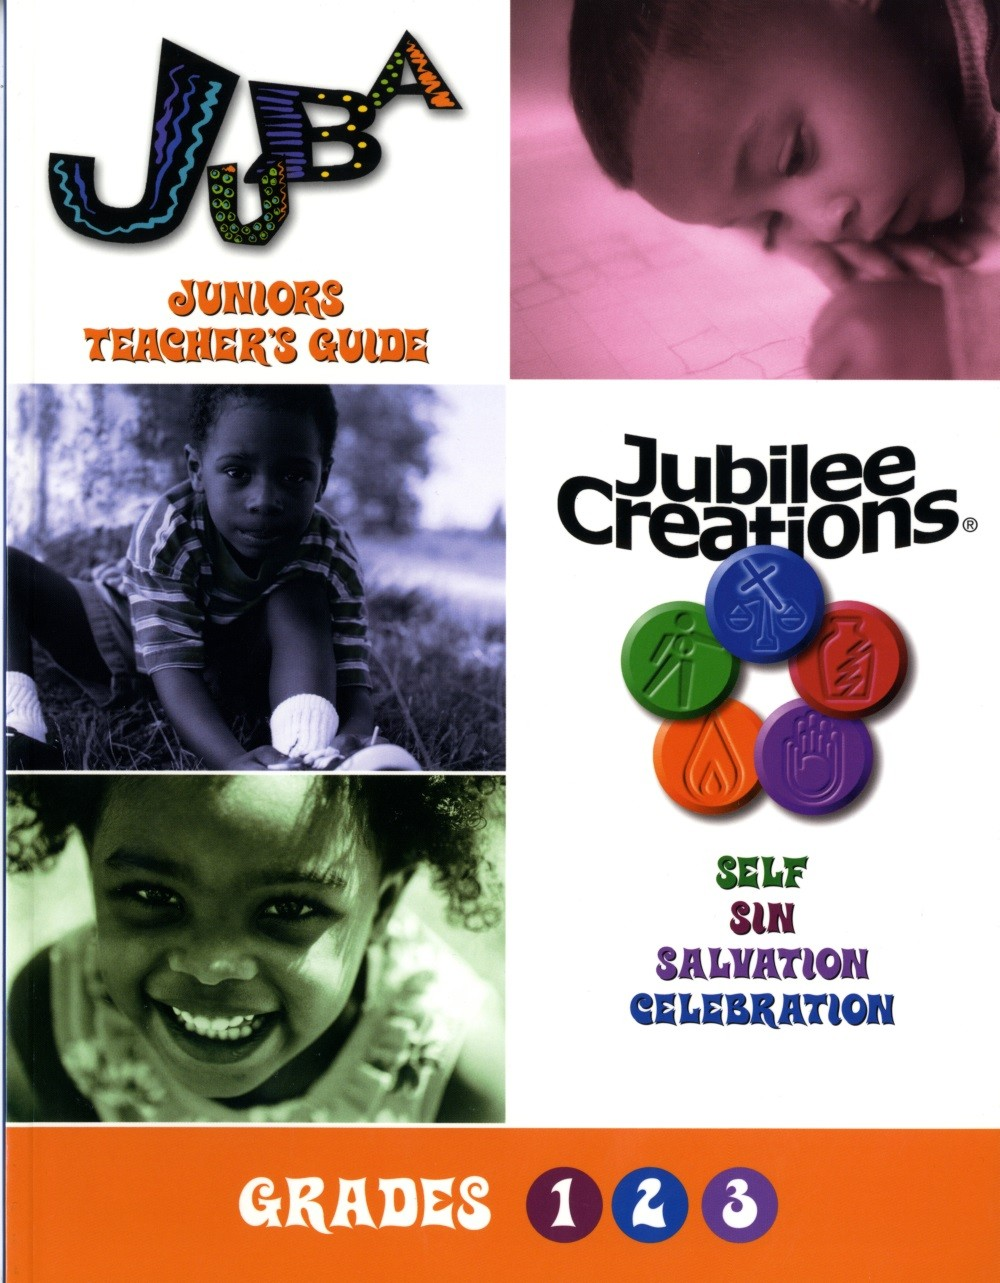 Juba Juniors Teacher Guide--1, 2, 3 (Self, Sin, Salvation)